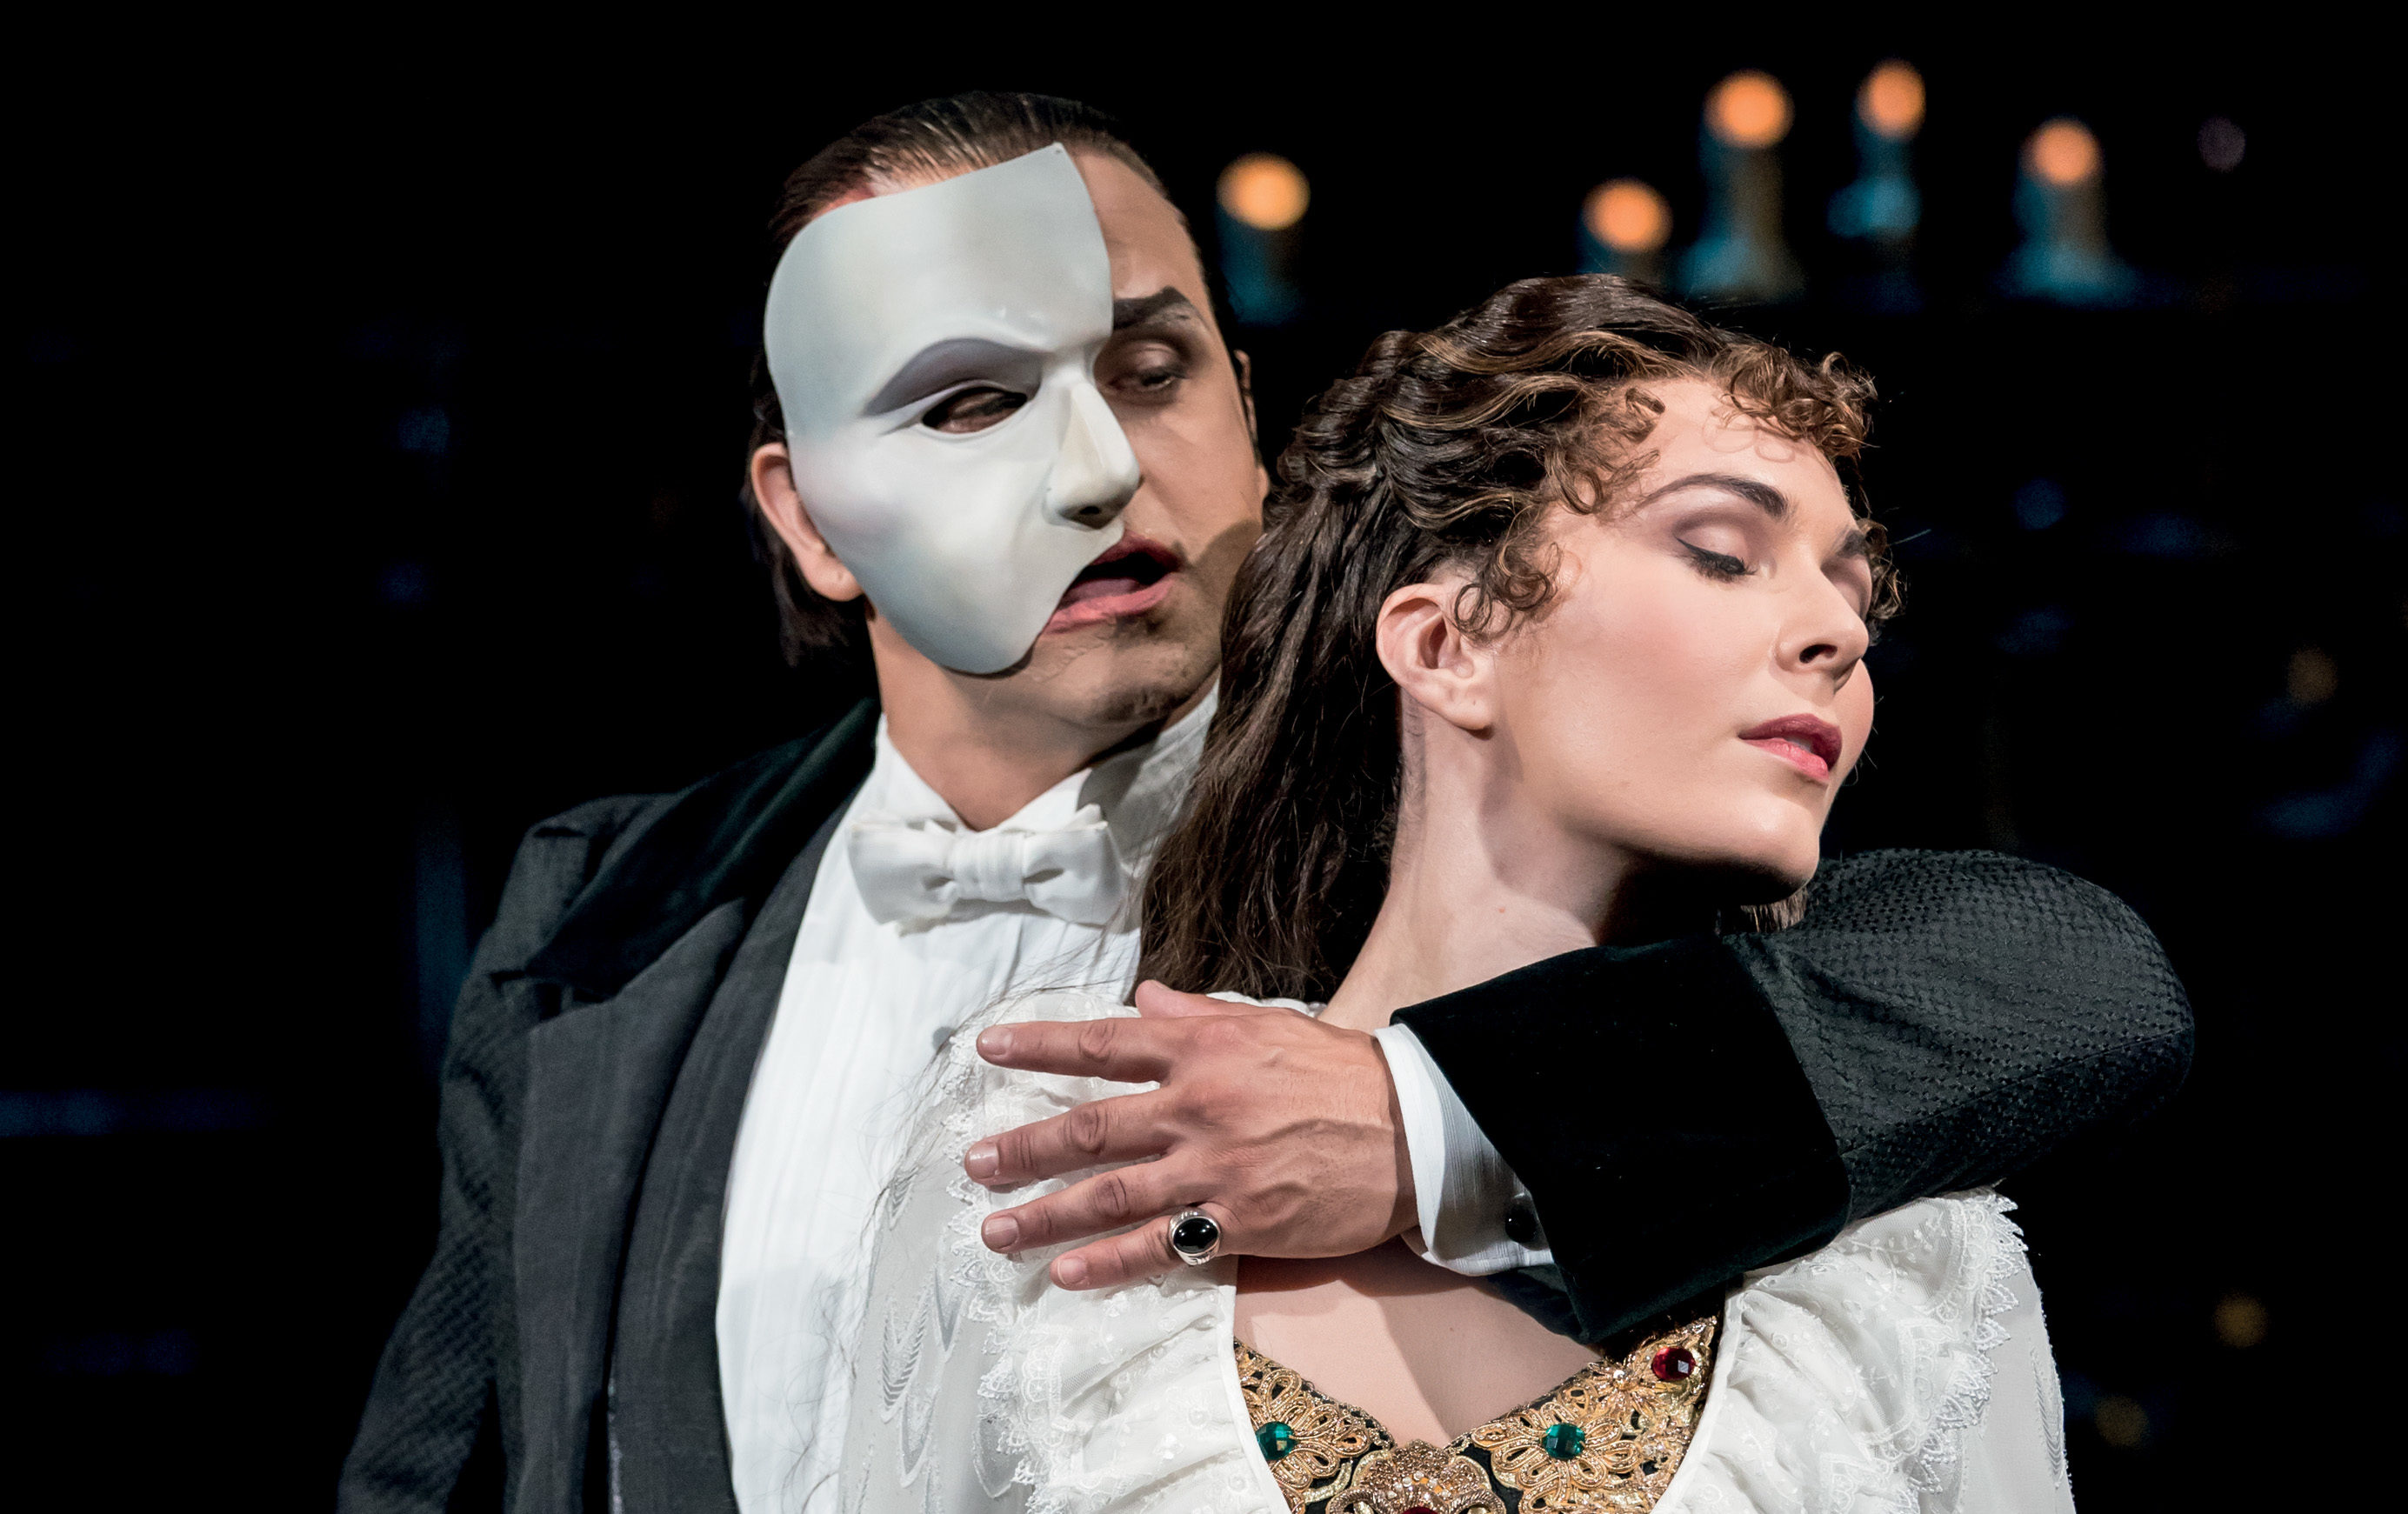 Kelly Mathieson on stage with Tim Howar in The Phantom of the Opera (Johan Persson)